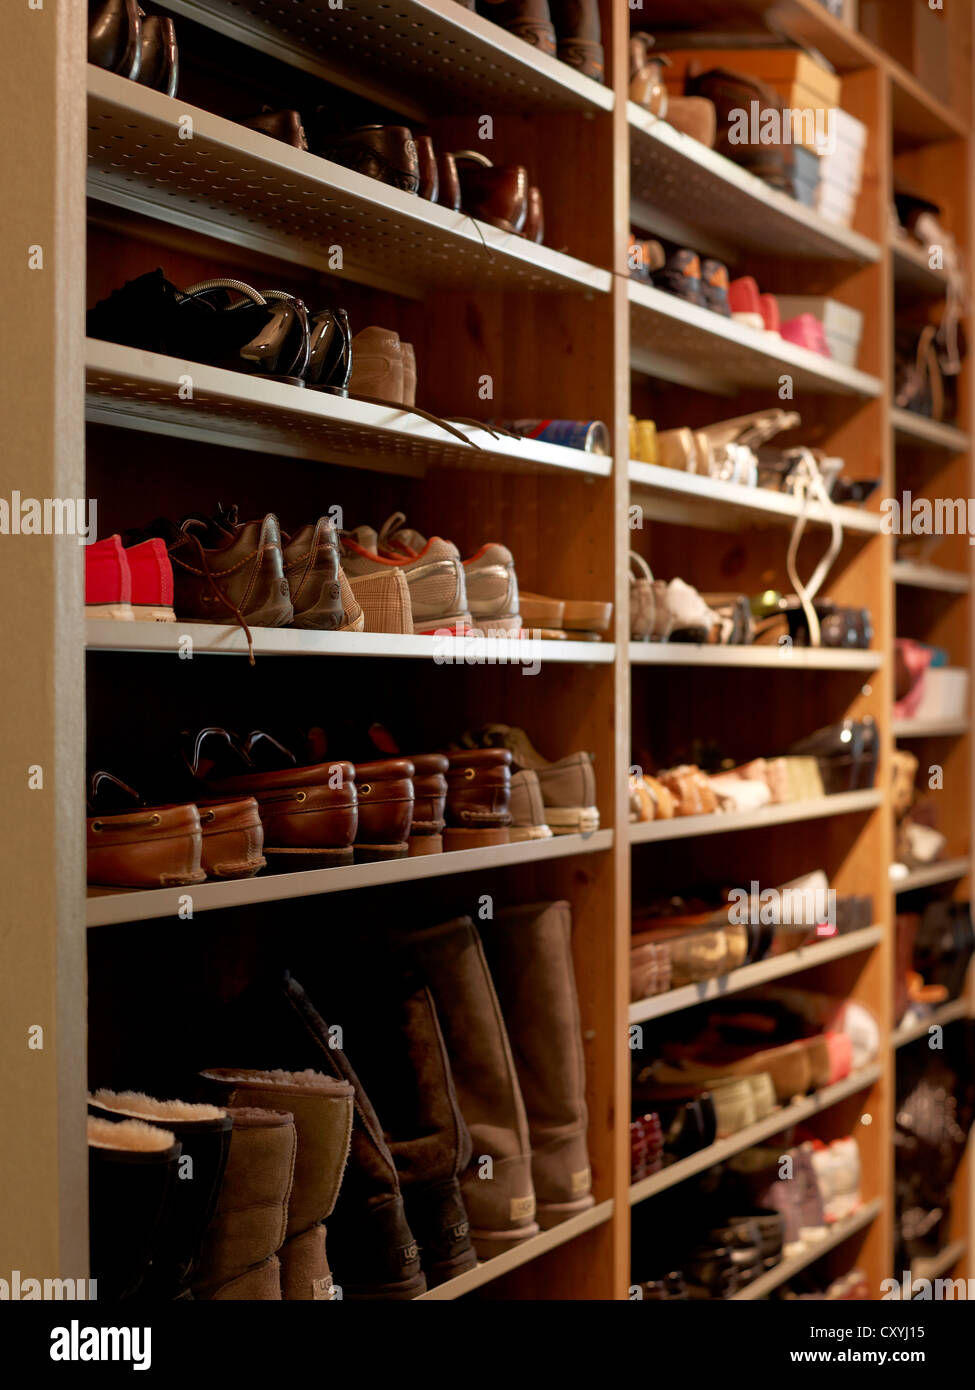 Superbe Open Shoe Rack In A Large Family Household   Stock Image